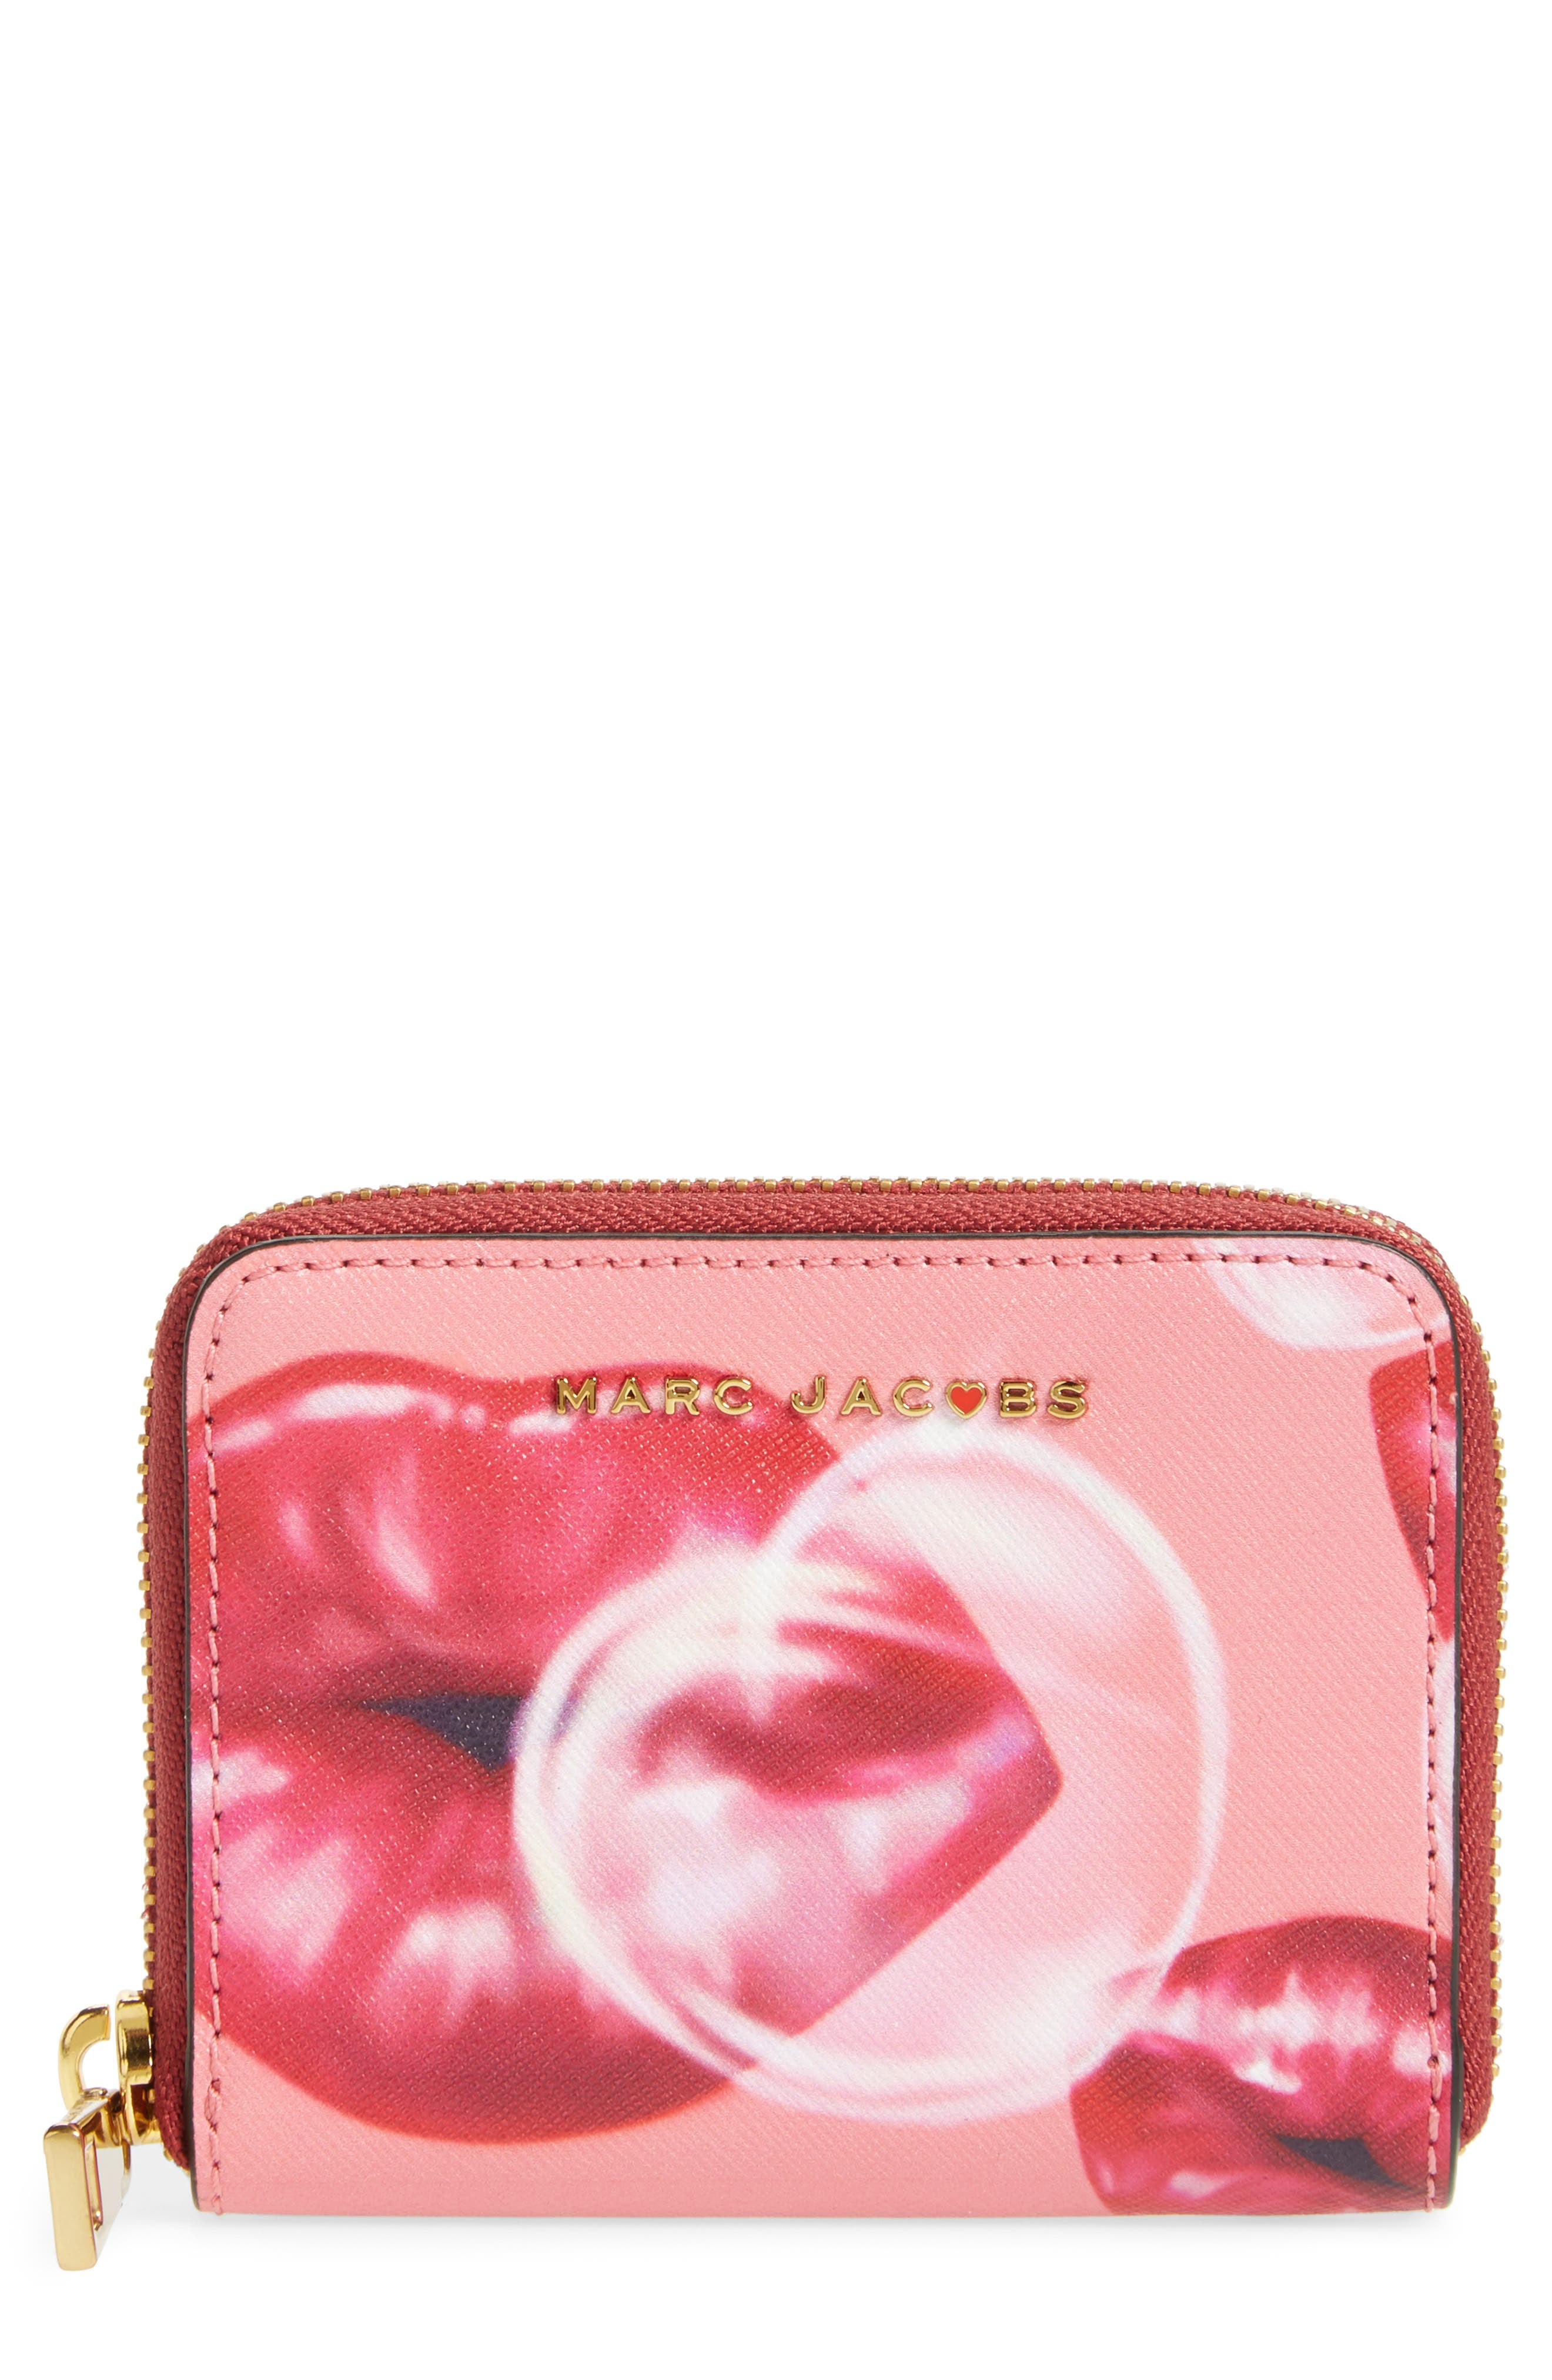 Alternate Image 1 Selected - MARC JACOBS Lips Saffiano Leather Zip Around Wallet